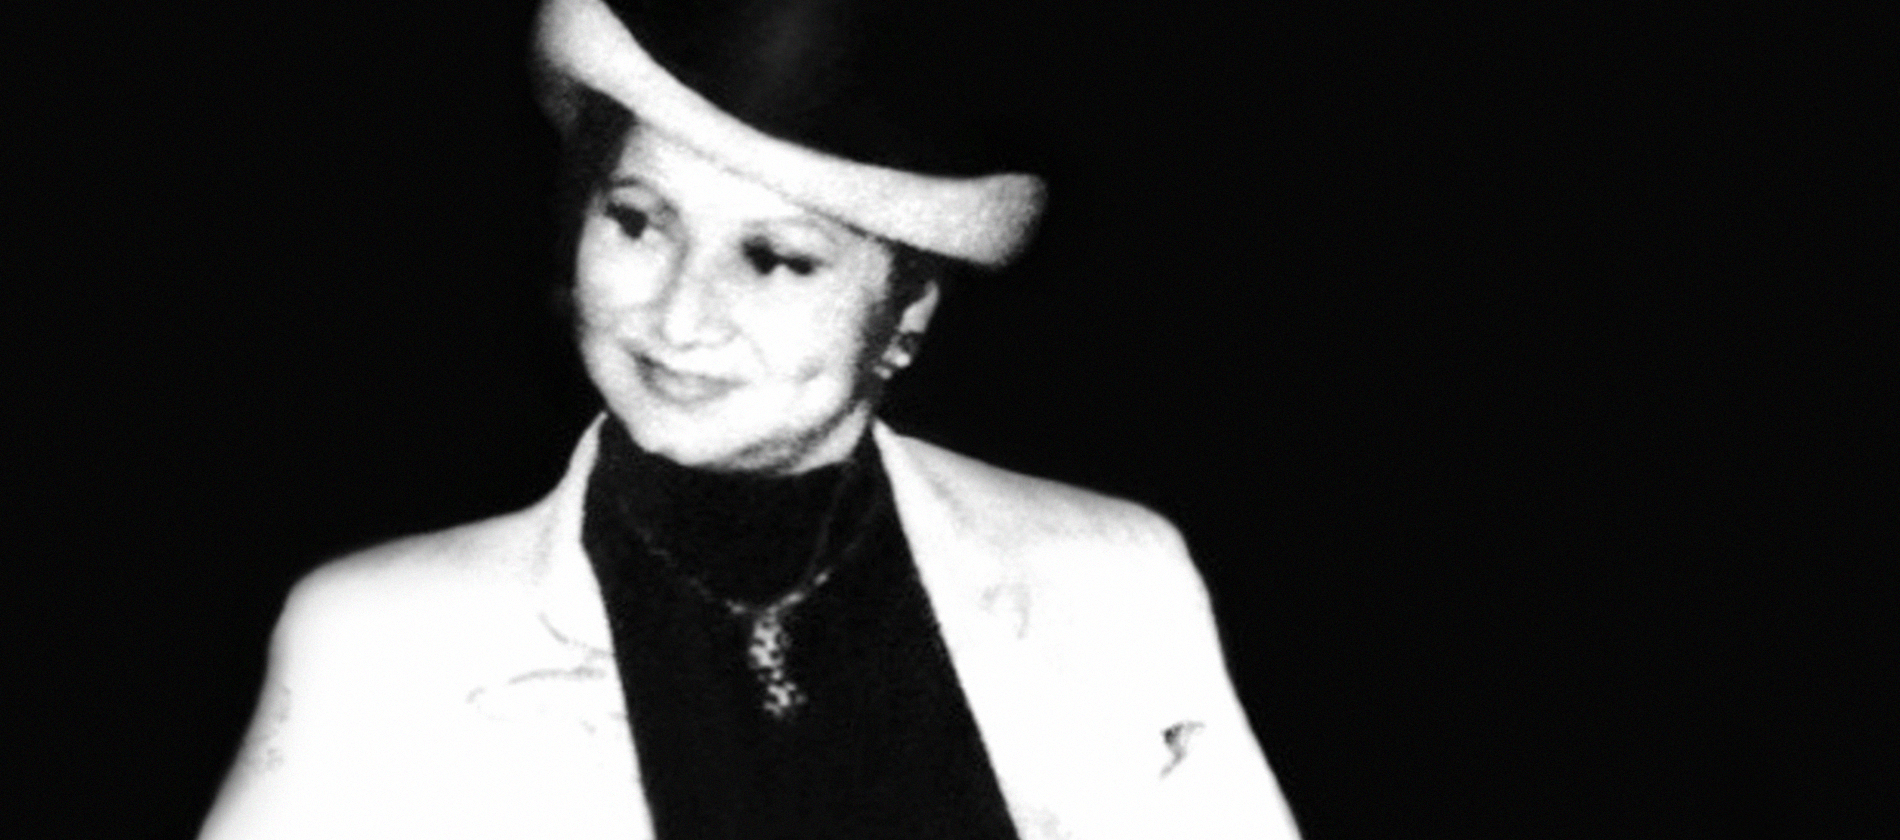 Walter Blanco And Griselda Blanco images - Hdimagelib